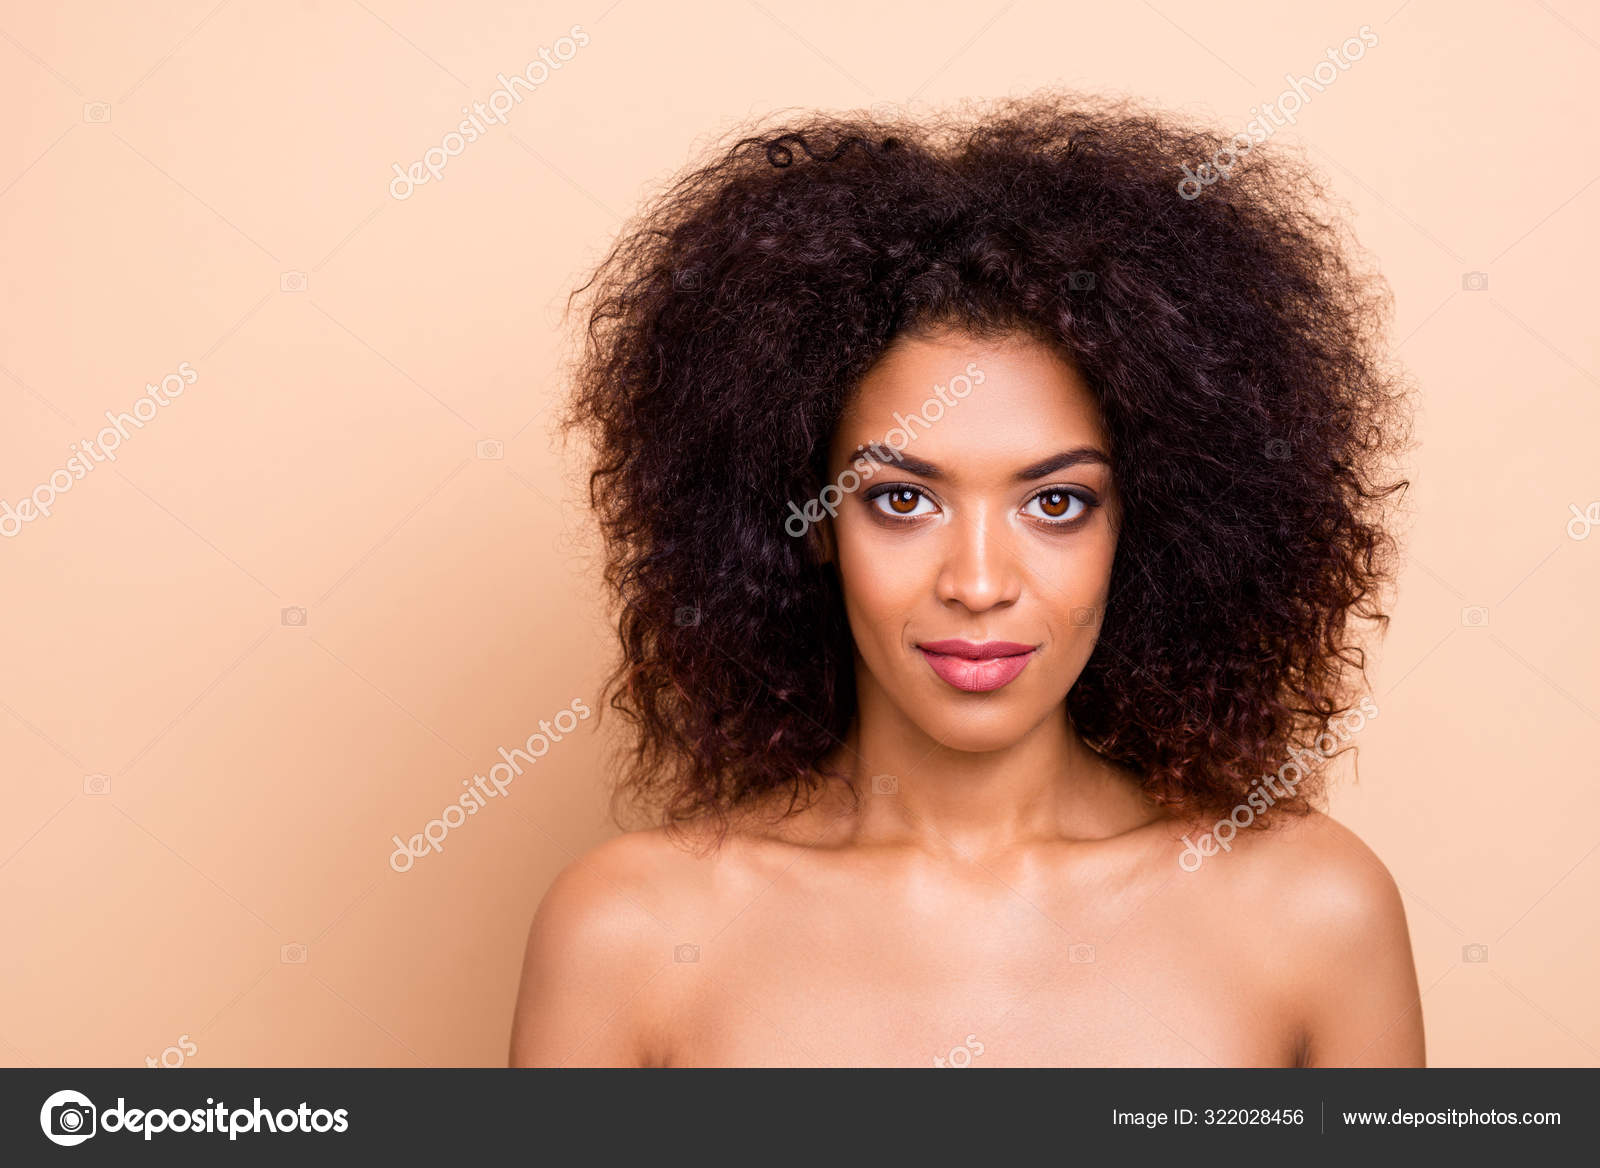 Close Up Photo Beautiful Amazing She Her Dark Skin Lady Confidently Look Camera Self Confident After Salon Spa Procedures Aesthetic Ideal Appearance Wear Nothing Isolated Pastel Beige Background Stock Photo C Deagreez1